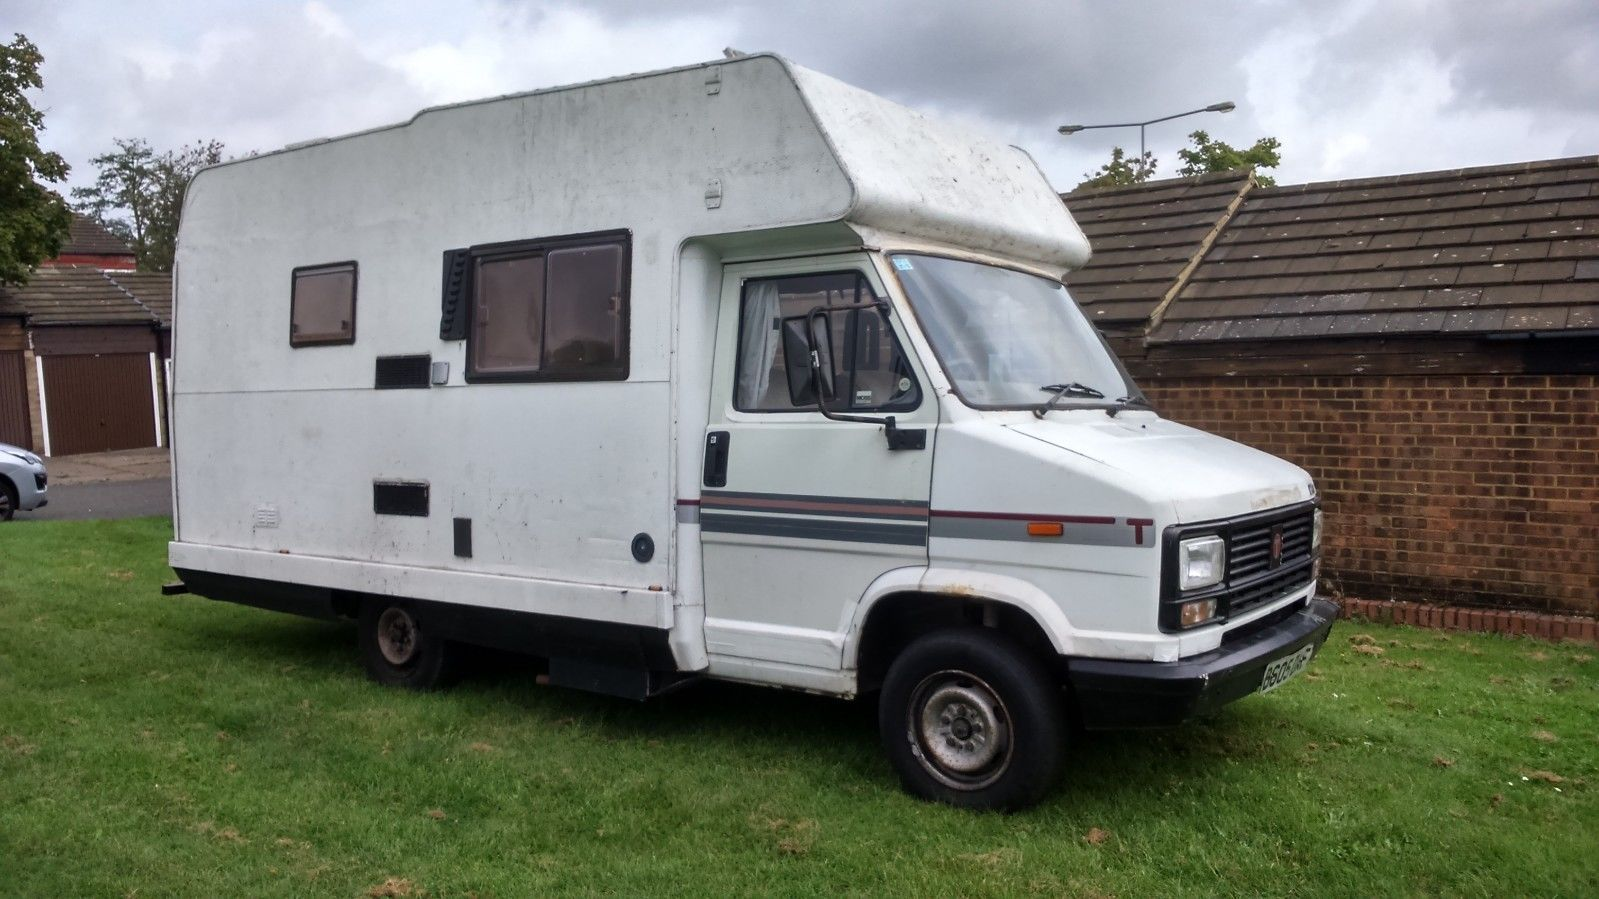 1985 Talbot Express Petrol 5 Berth Camper Motorhome Project Spares Or Repairs